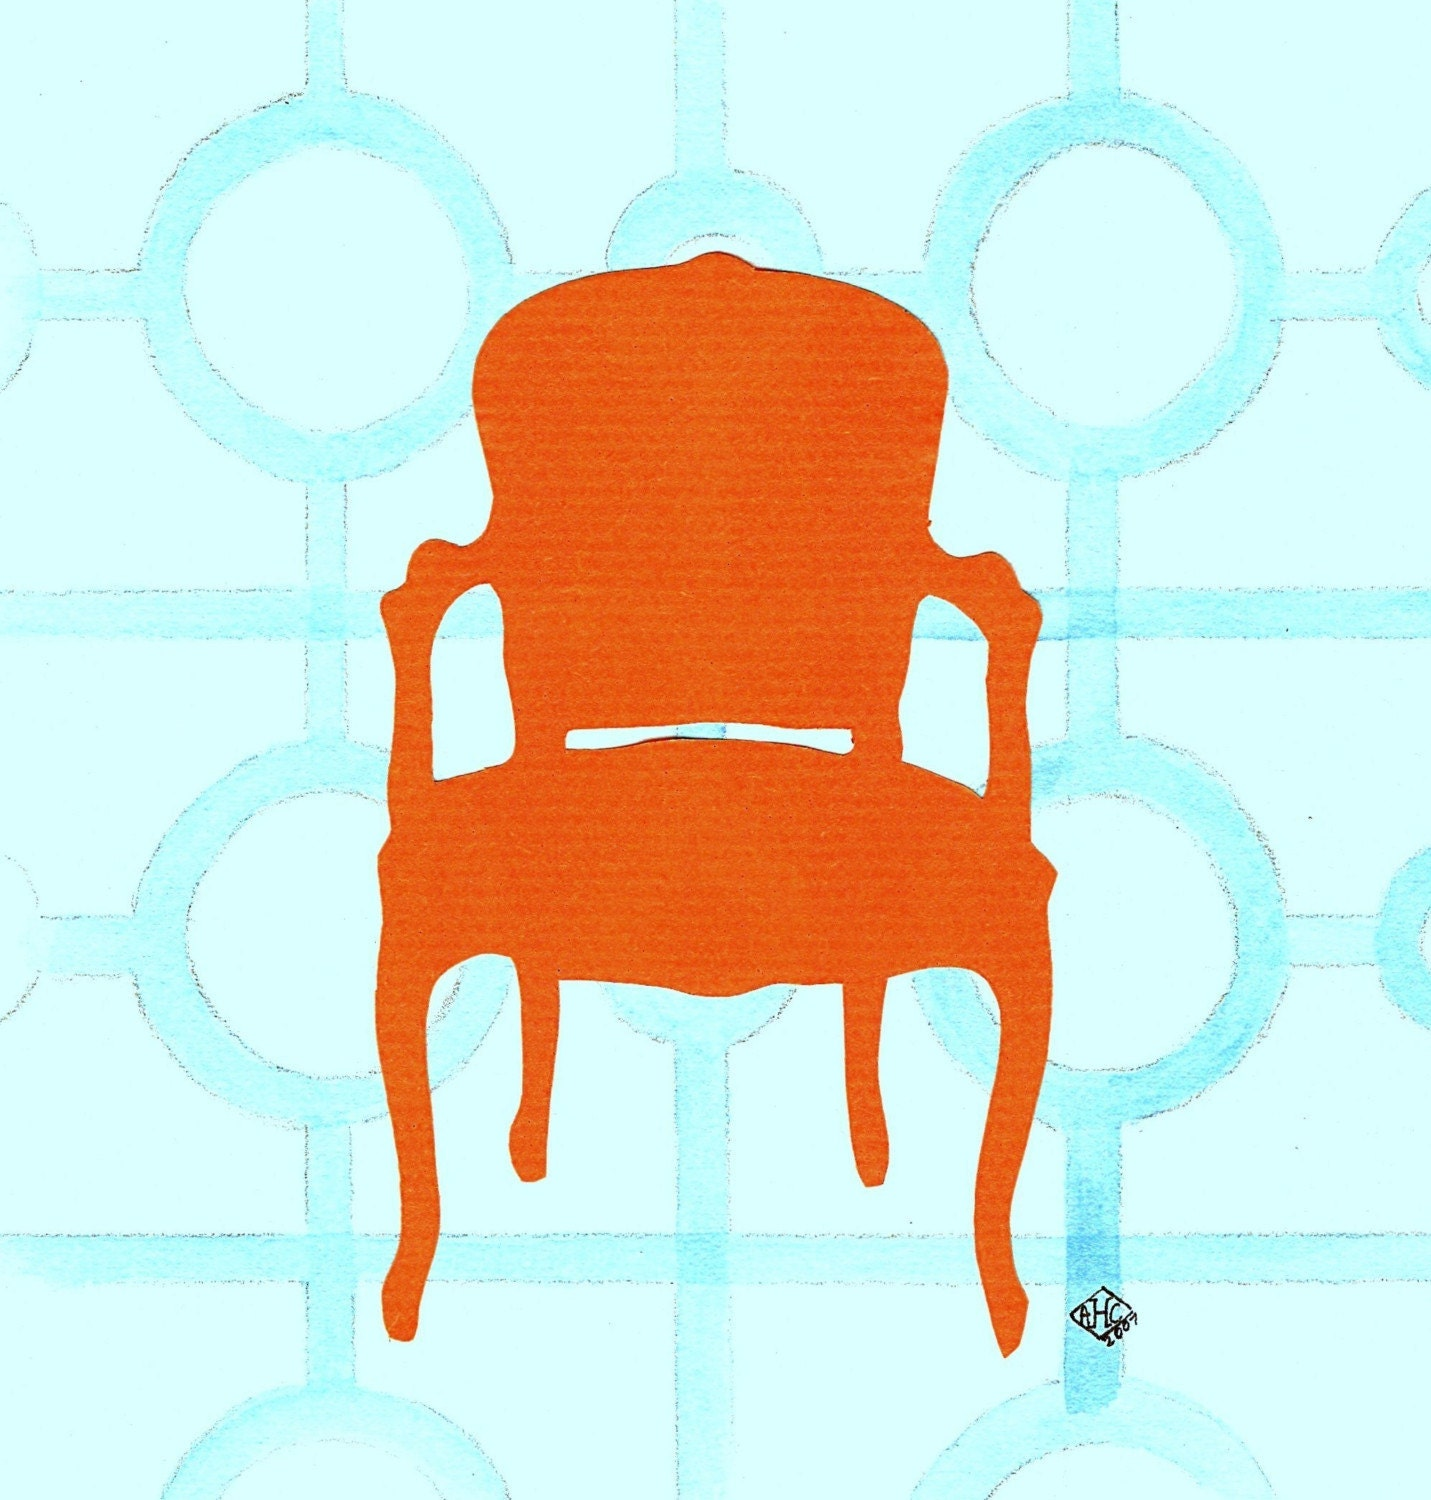 Antique chair silhouette - Chair Silhouette Orange Chair Silhouette Collage Card By Annechovie On